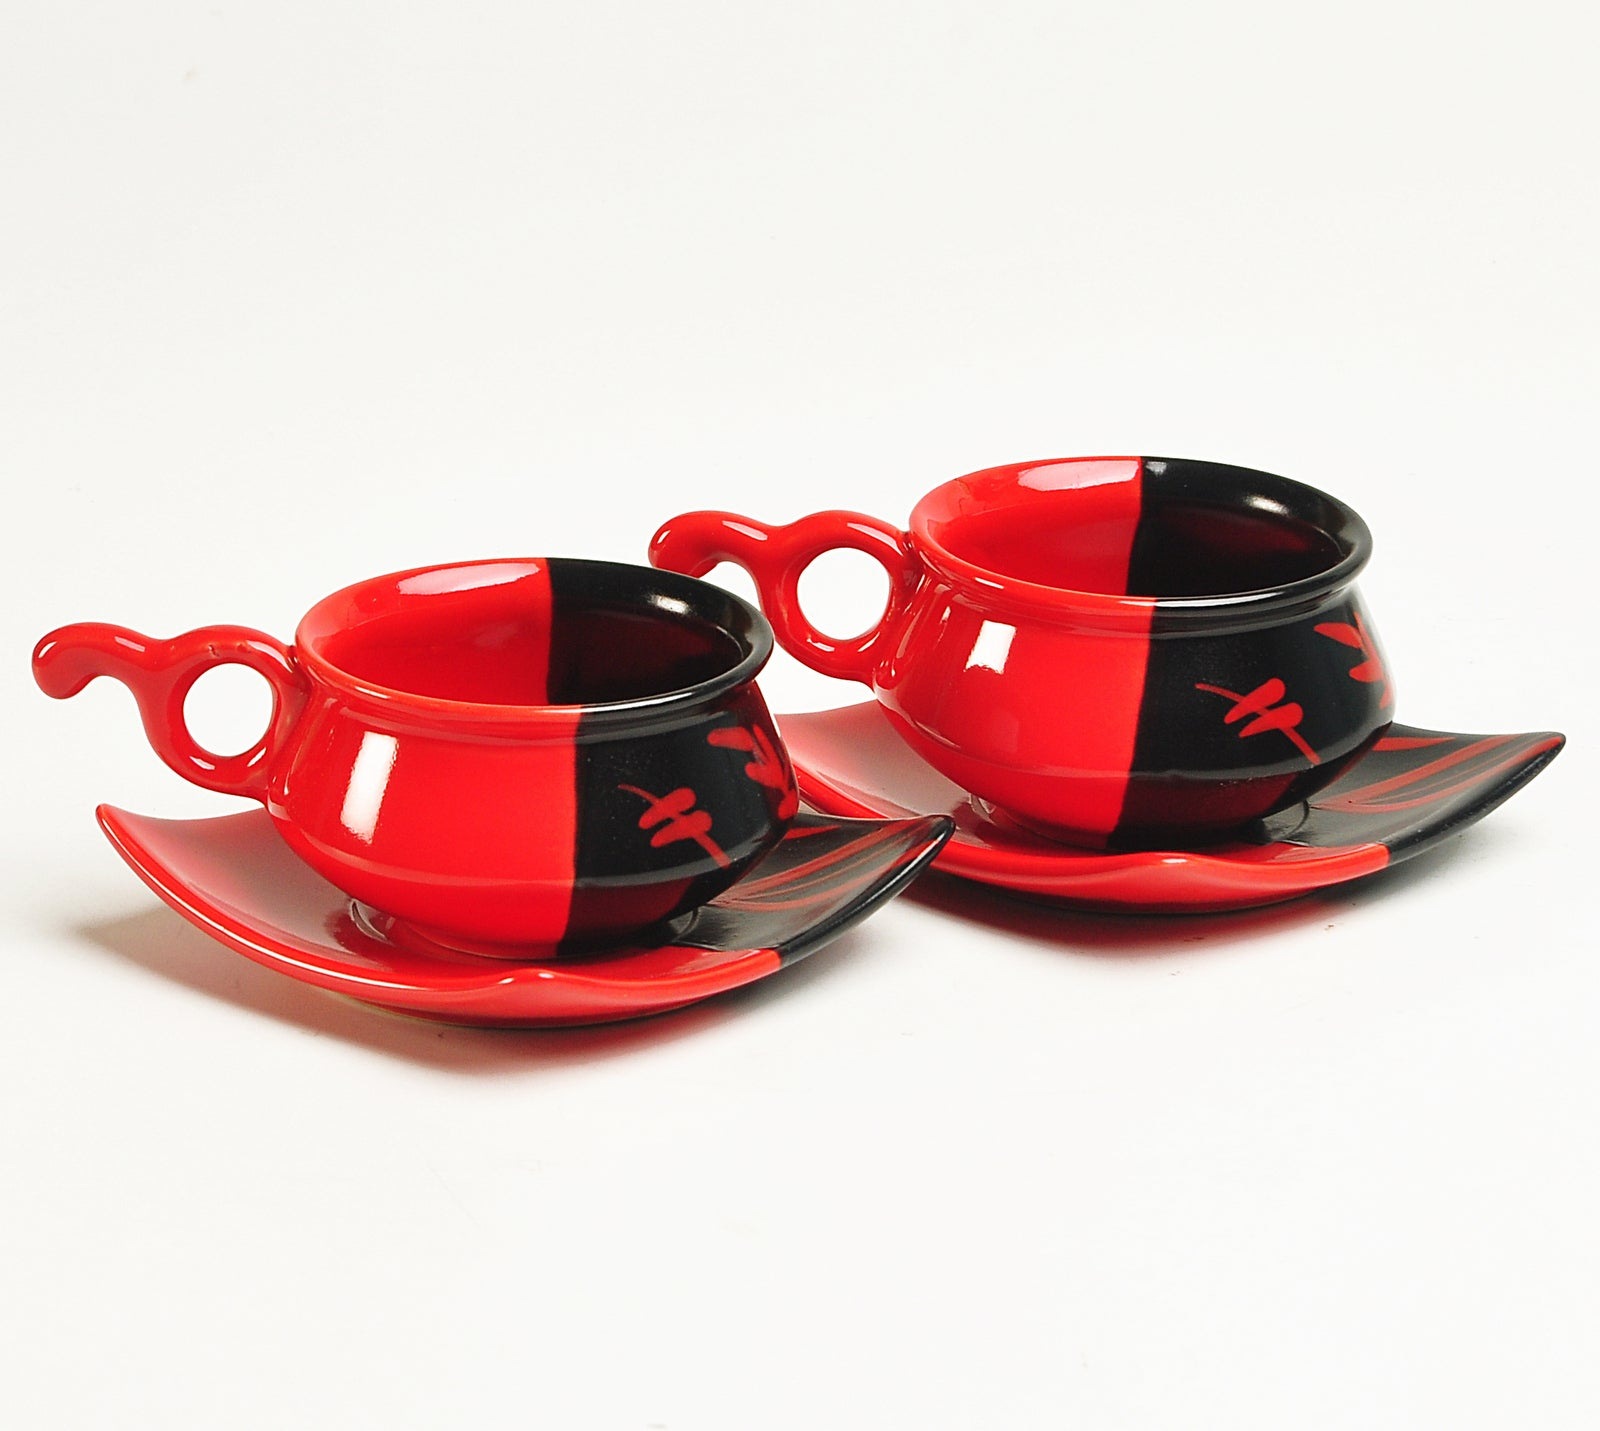 Duett Red and Black Morning Set - Set of 7 pcs